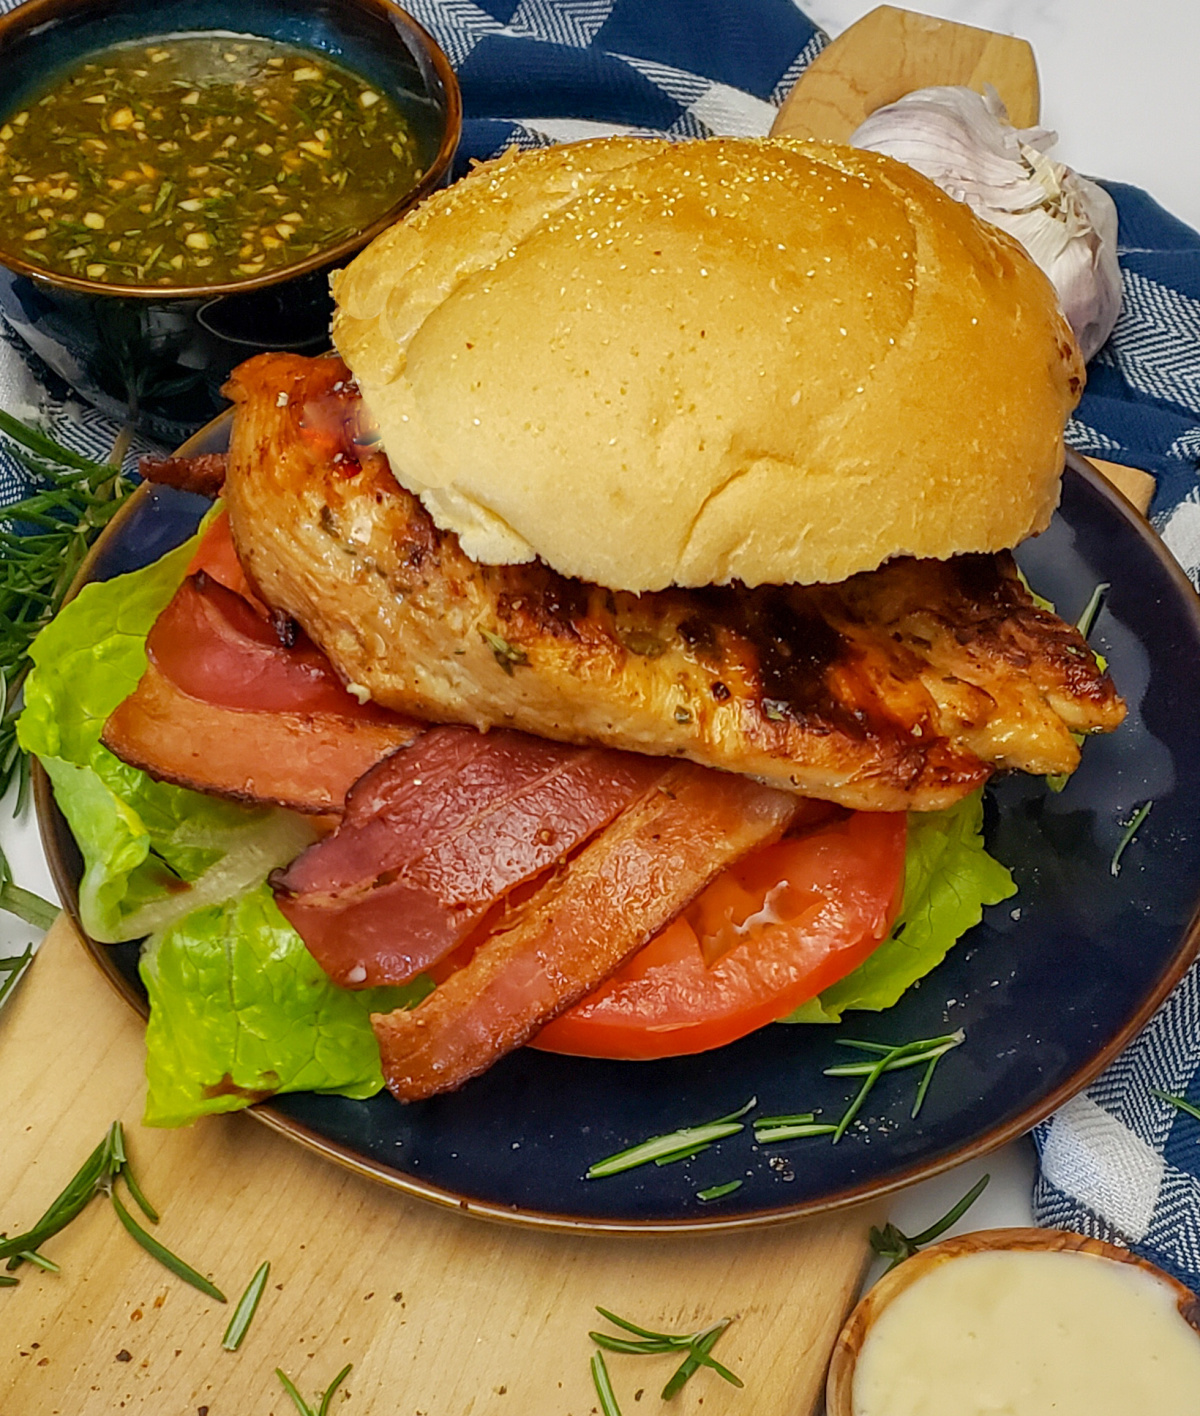 Maple Rosemary & Garlic Herb Grilled Chicken burger with bacon